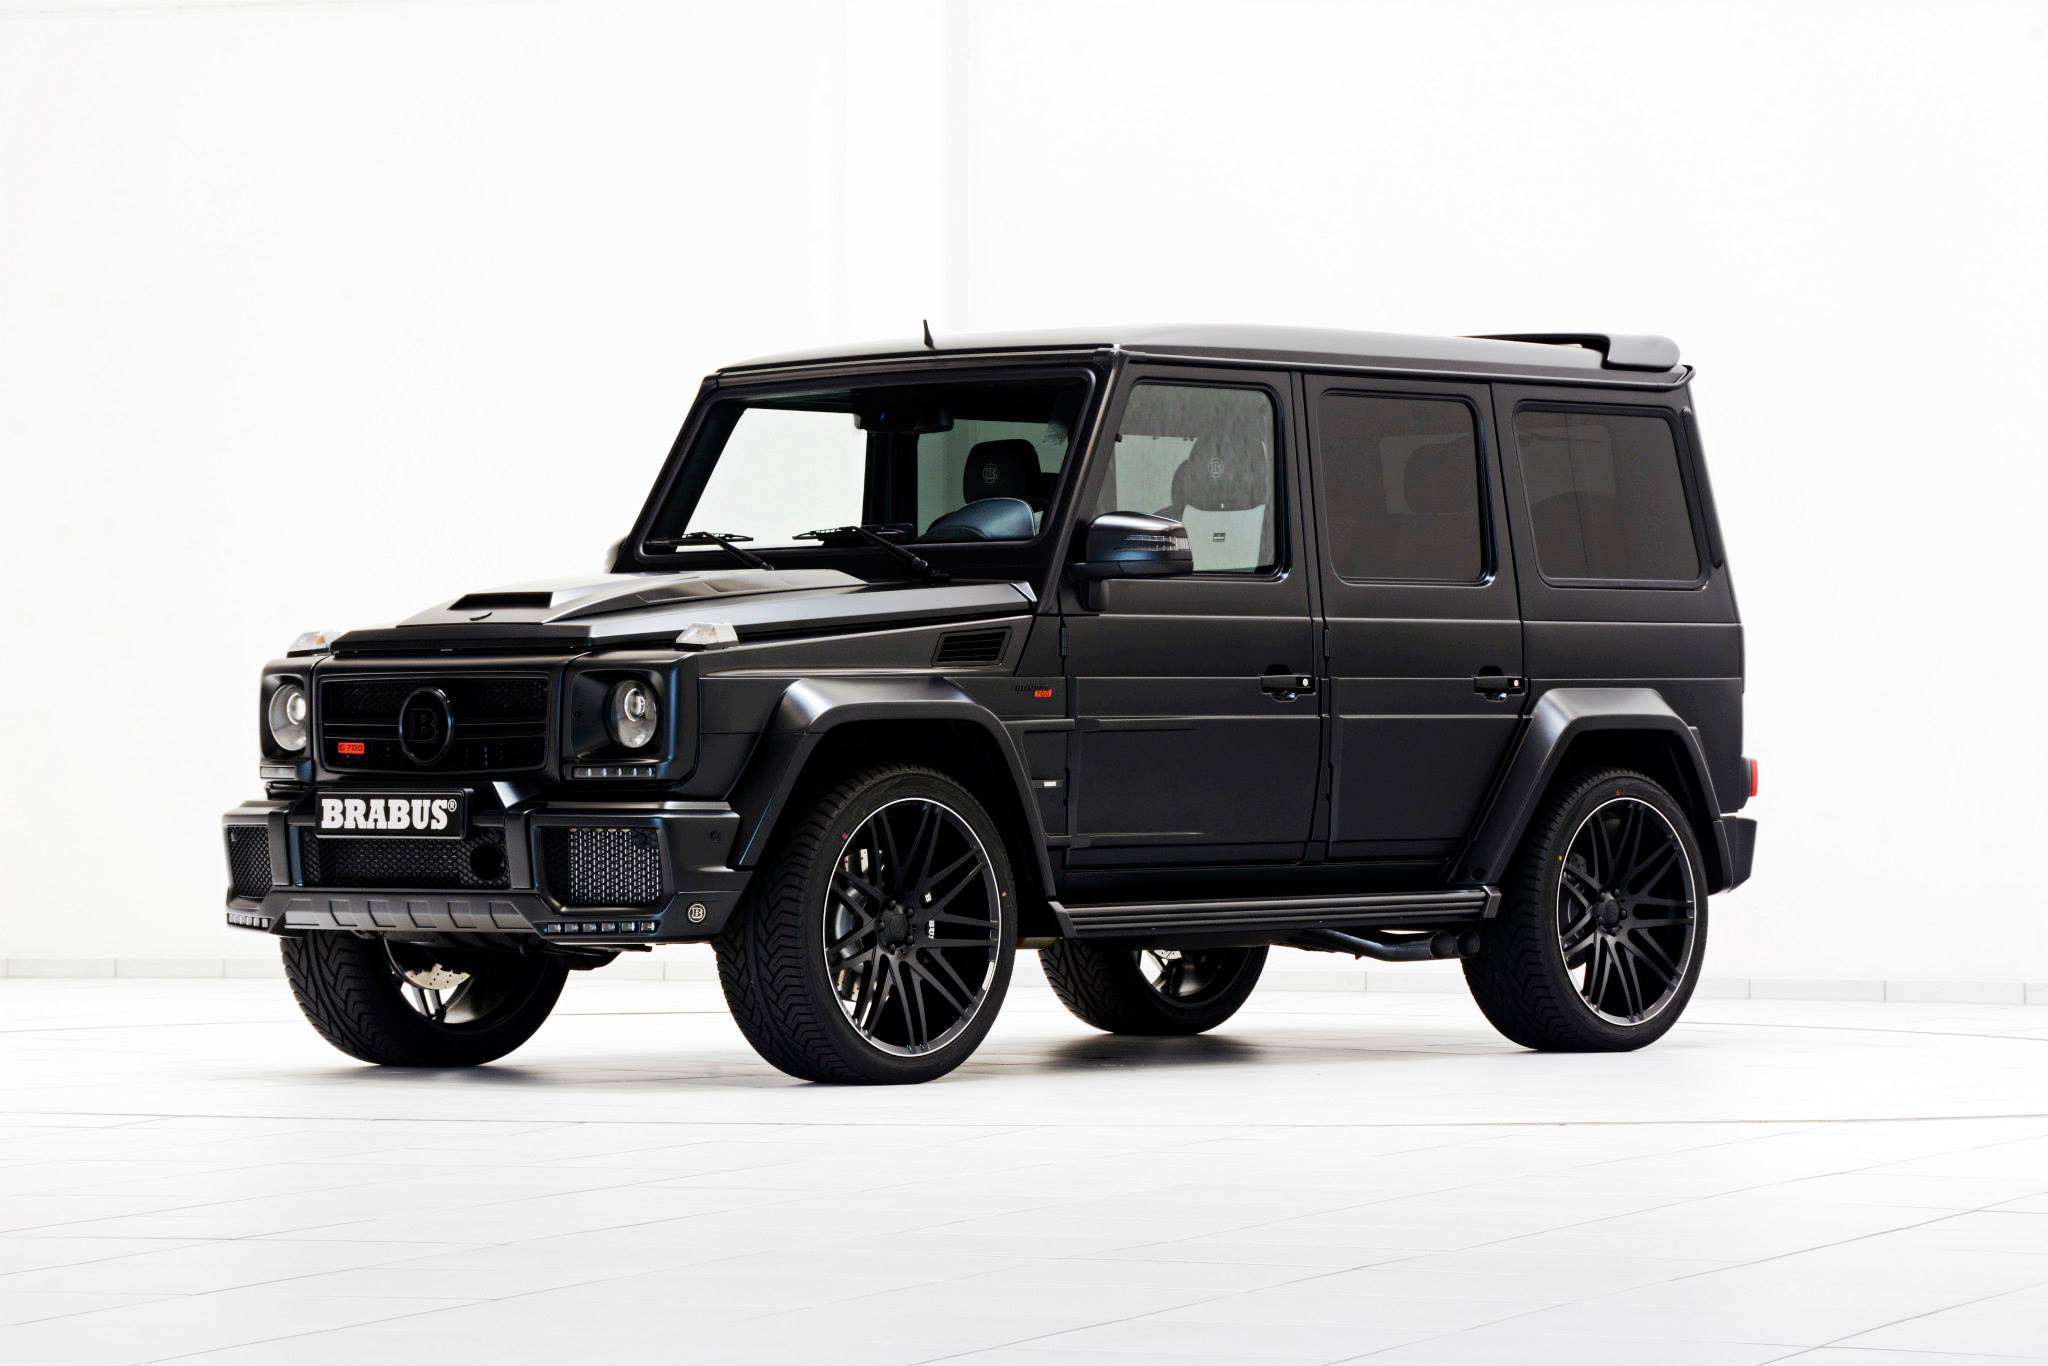 Open Road Mercedes >> Brabus 700 Widestar for G63 AMG Is a Sinister Off-road Batmobile - autoevolution